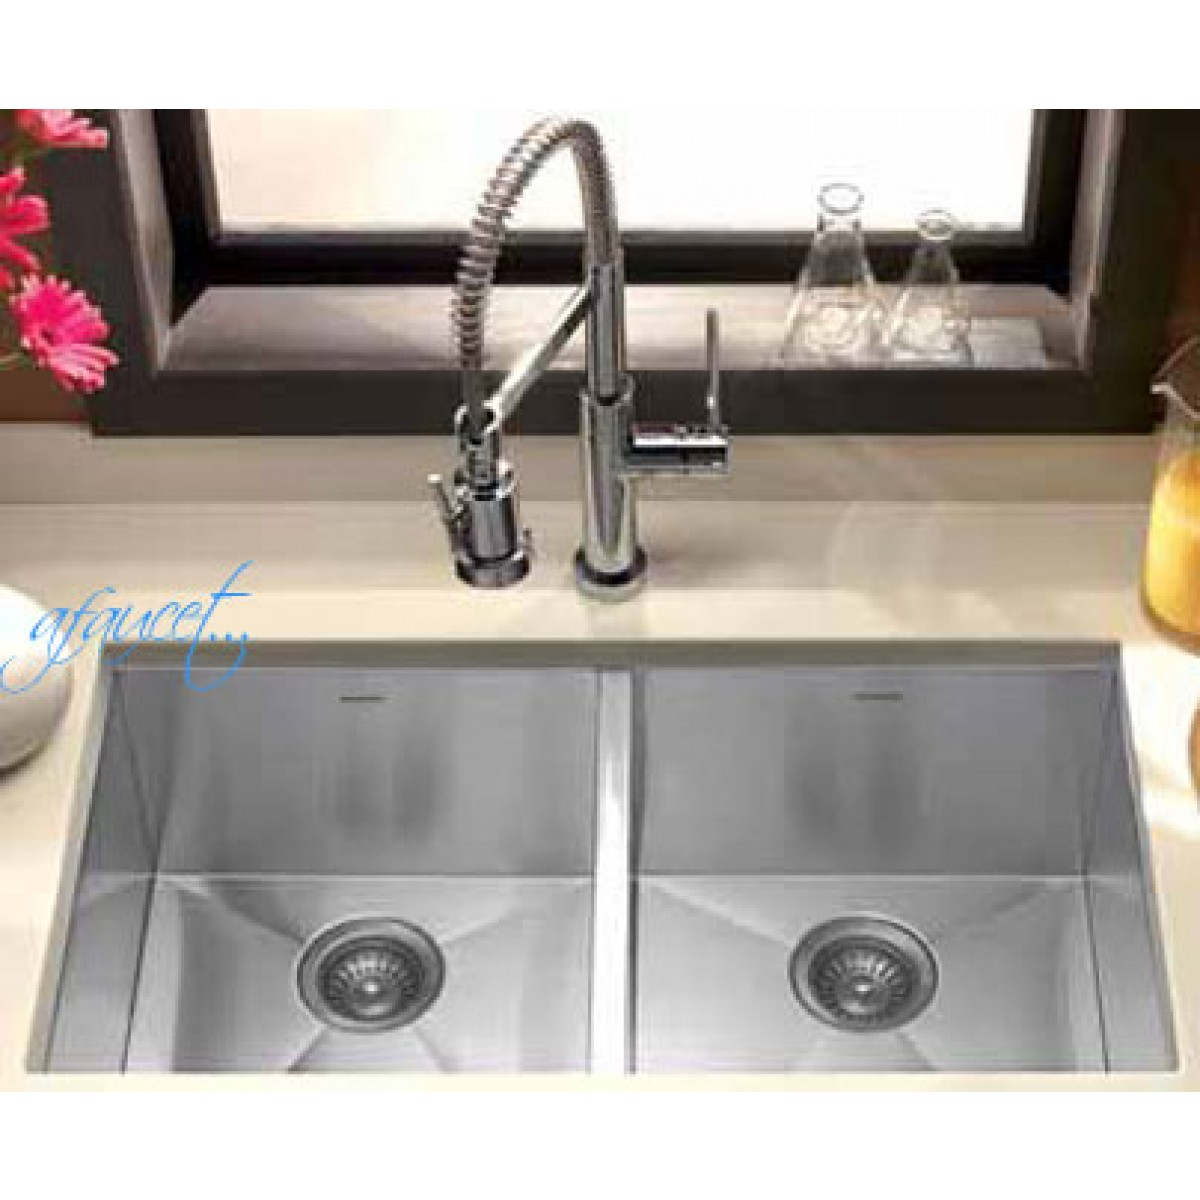 Undermount Ss Kitchen Sinks